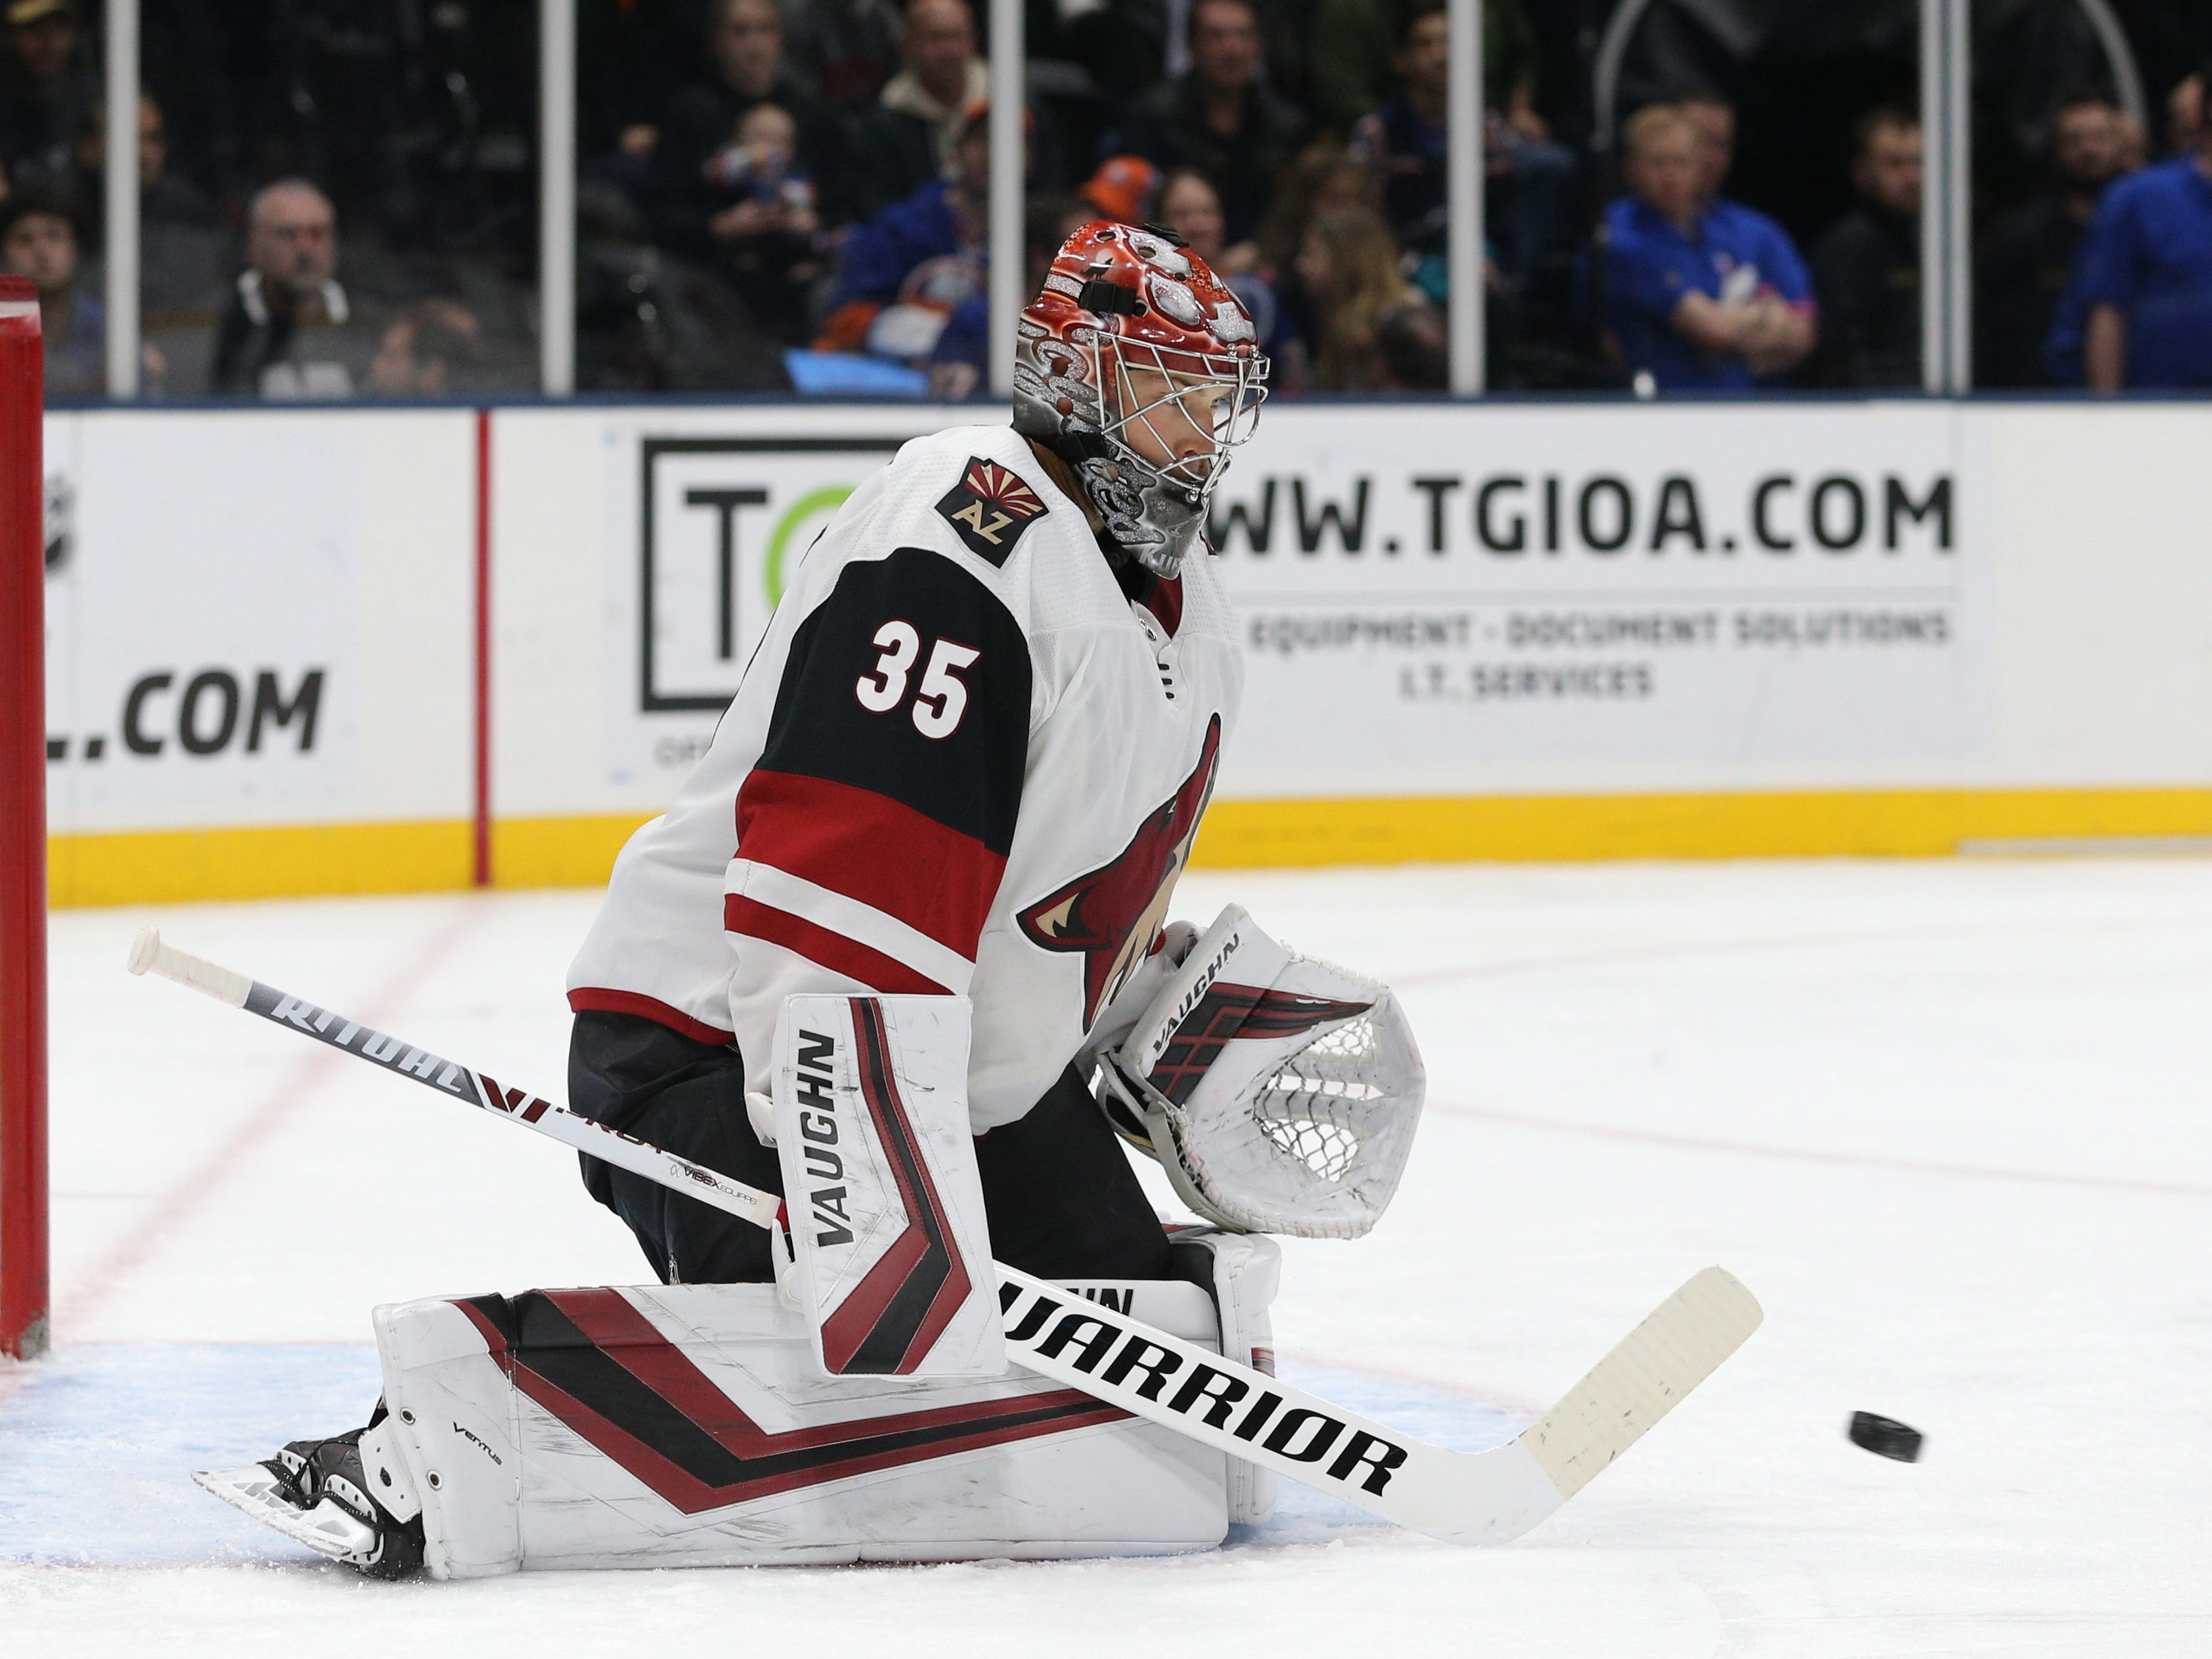 Mar 24, 2019; Uniondale, NY, USA; Arizona Coyotes goalie Darcy Kuemper (35) makes a save against the New York Islanders during the second period at Nassau Veterans Memorial Coliseum. Mandatory Credit: Brad Penner-USA TODAY Sports